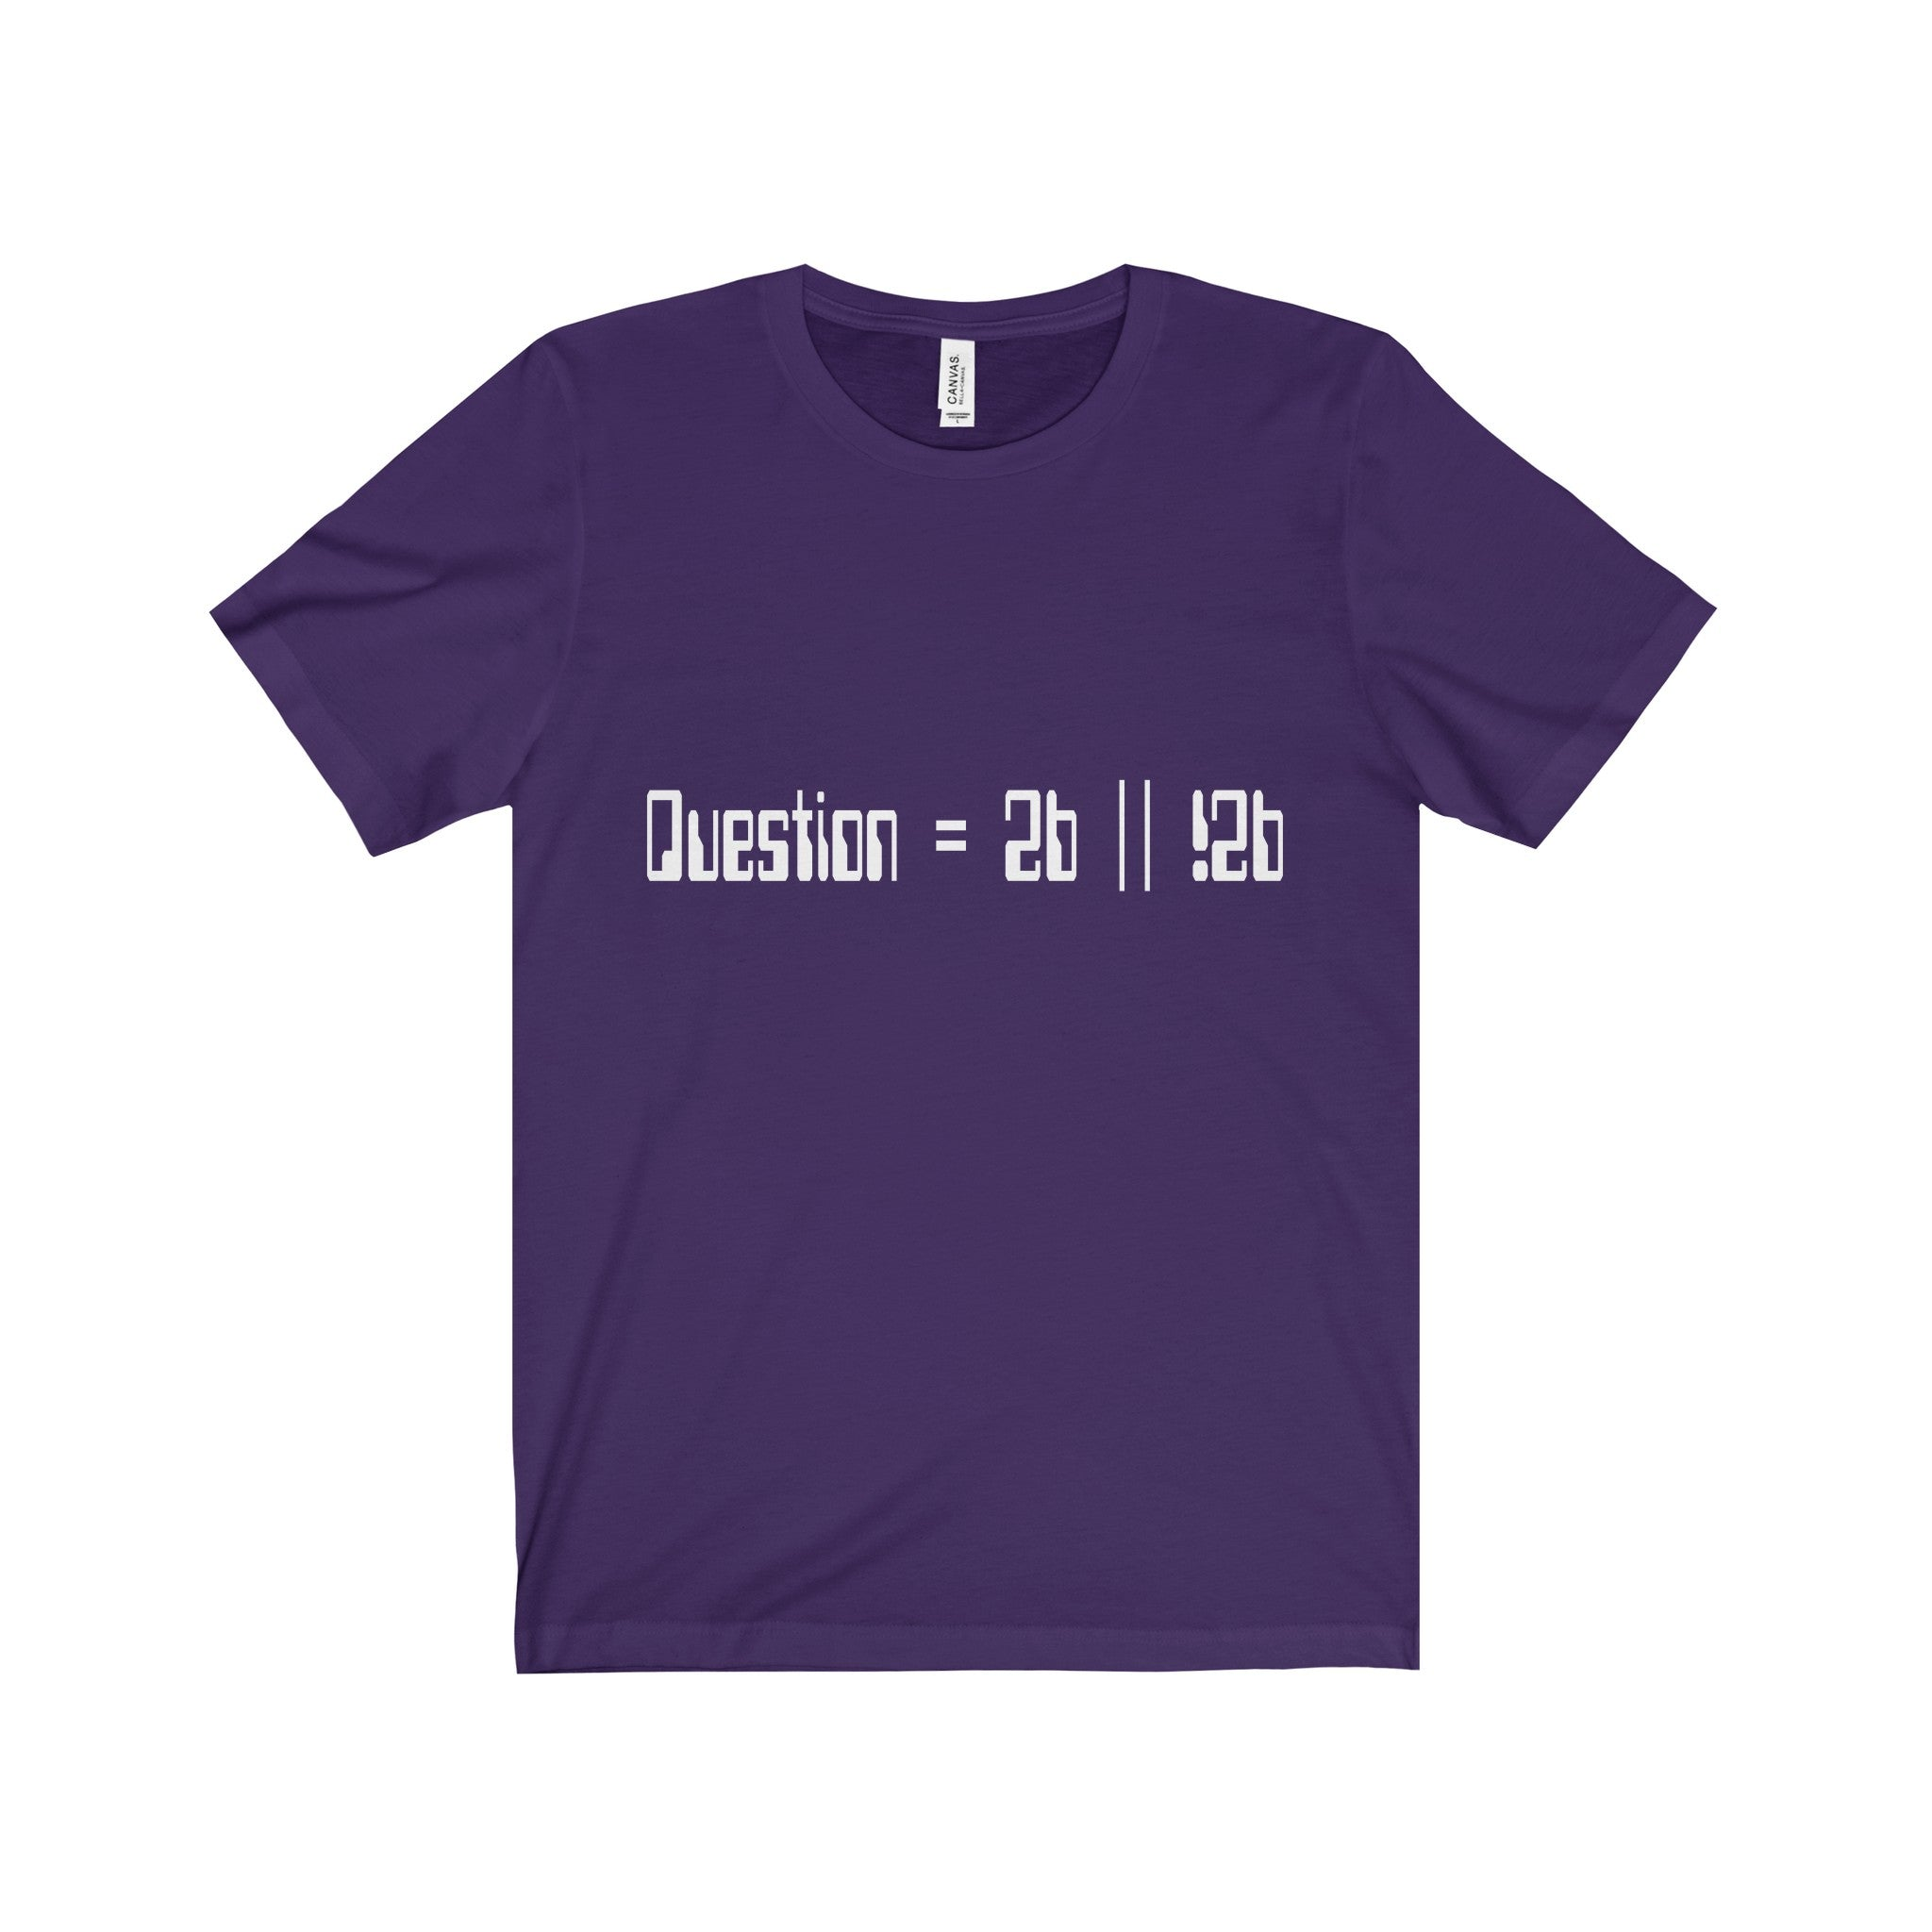 to be or not to be pseudocode men's unisex t-shirt Nerdedness